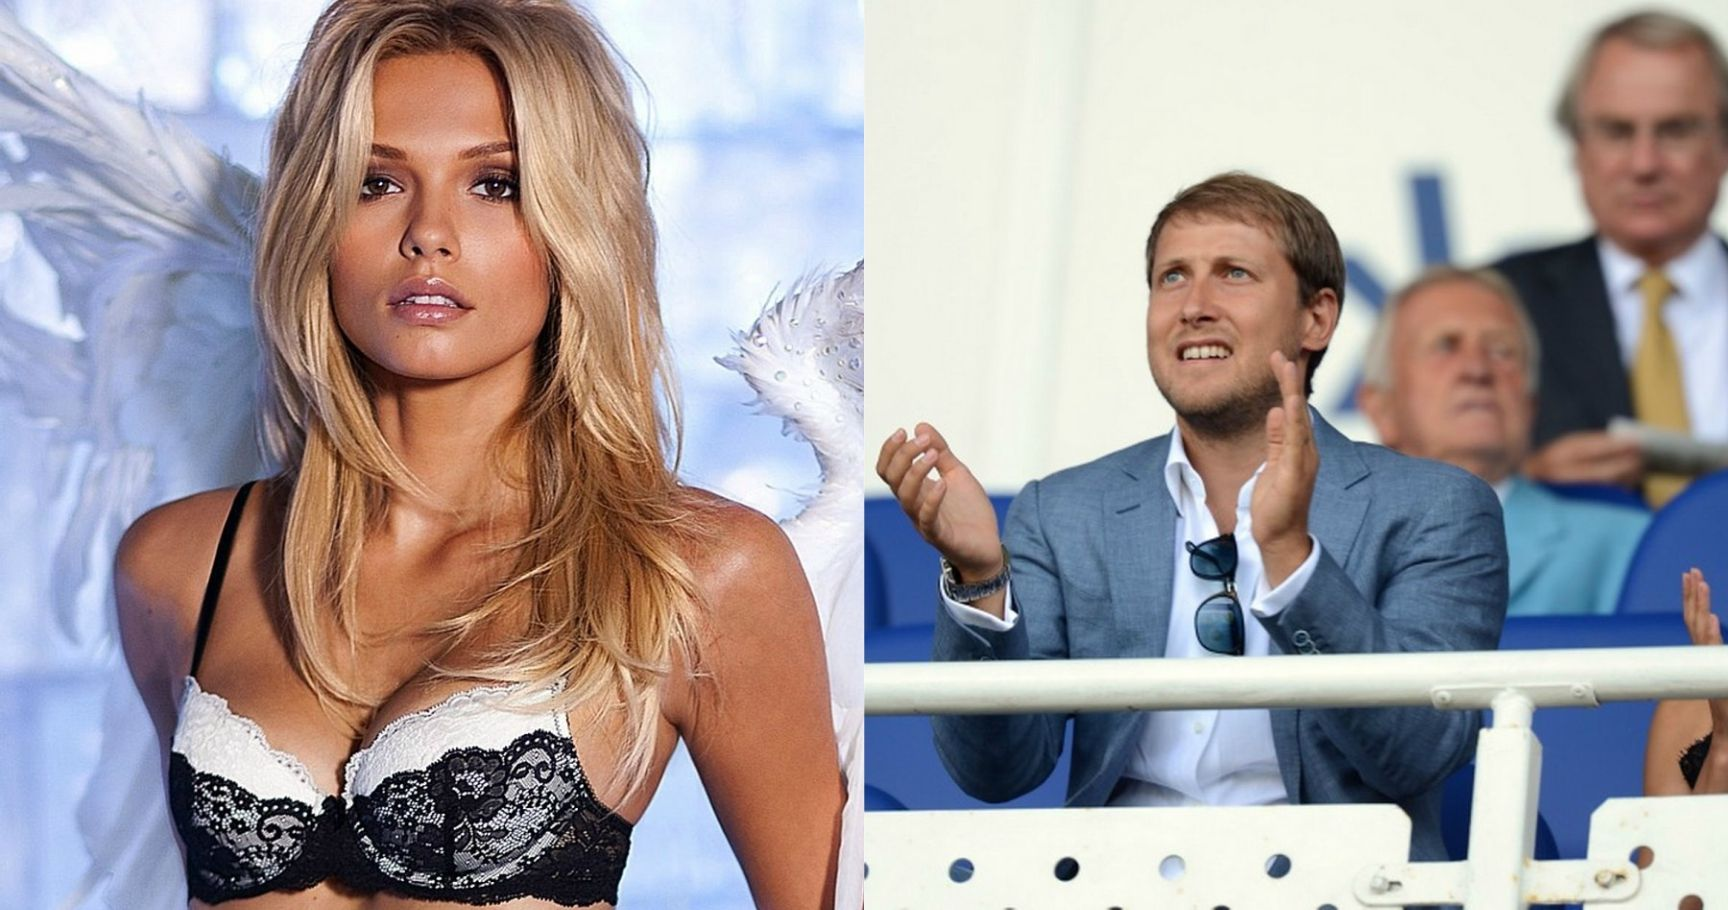 How the spouse of the richest man in the world lives